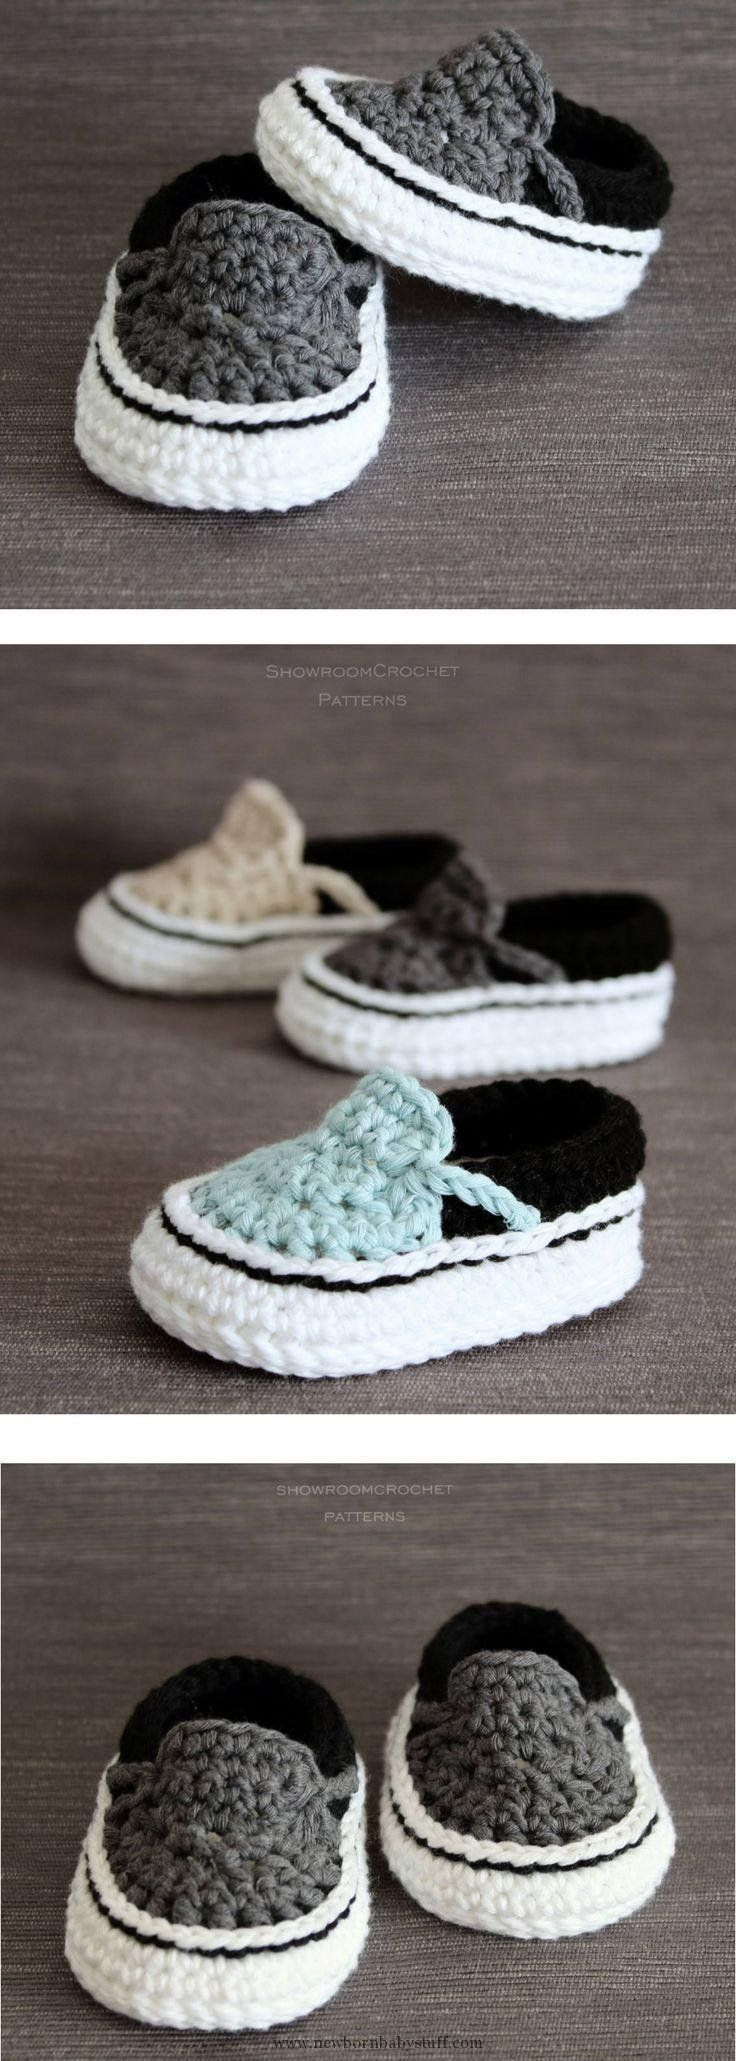 Pin on Sew! She can Crochet too!